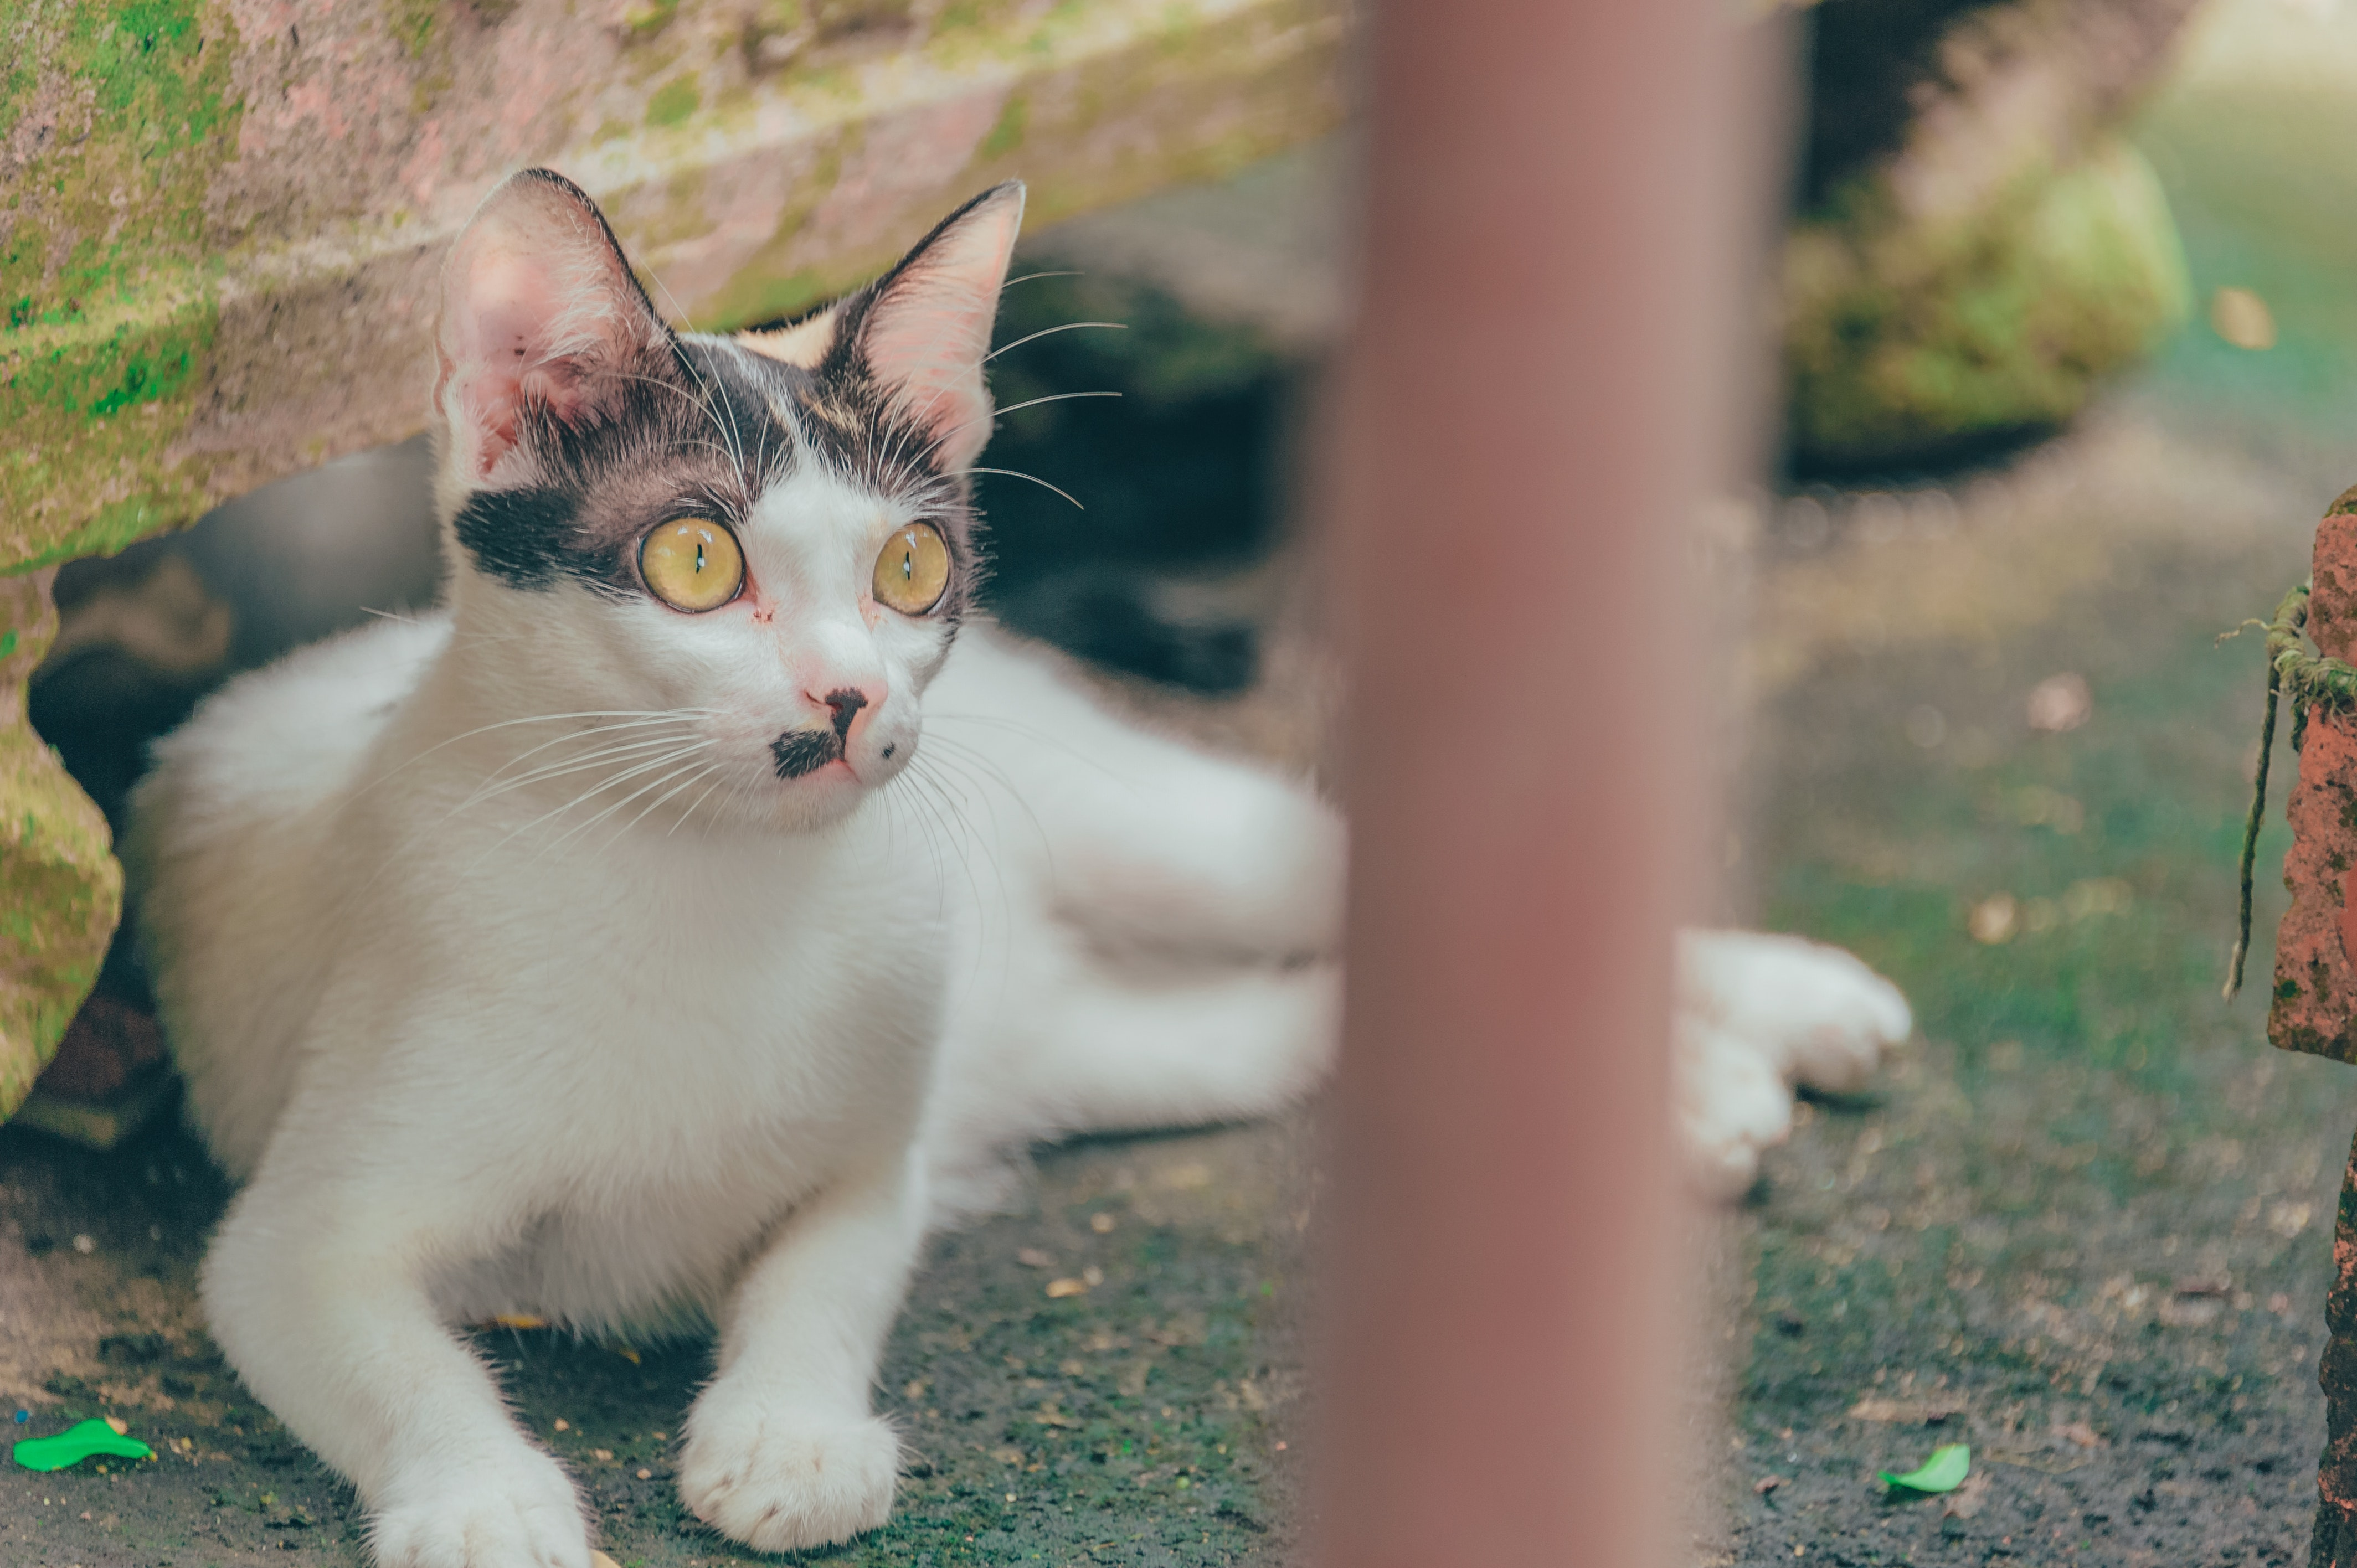 white-and-gray-cat-lying-on-mossy-ground-1441586